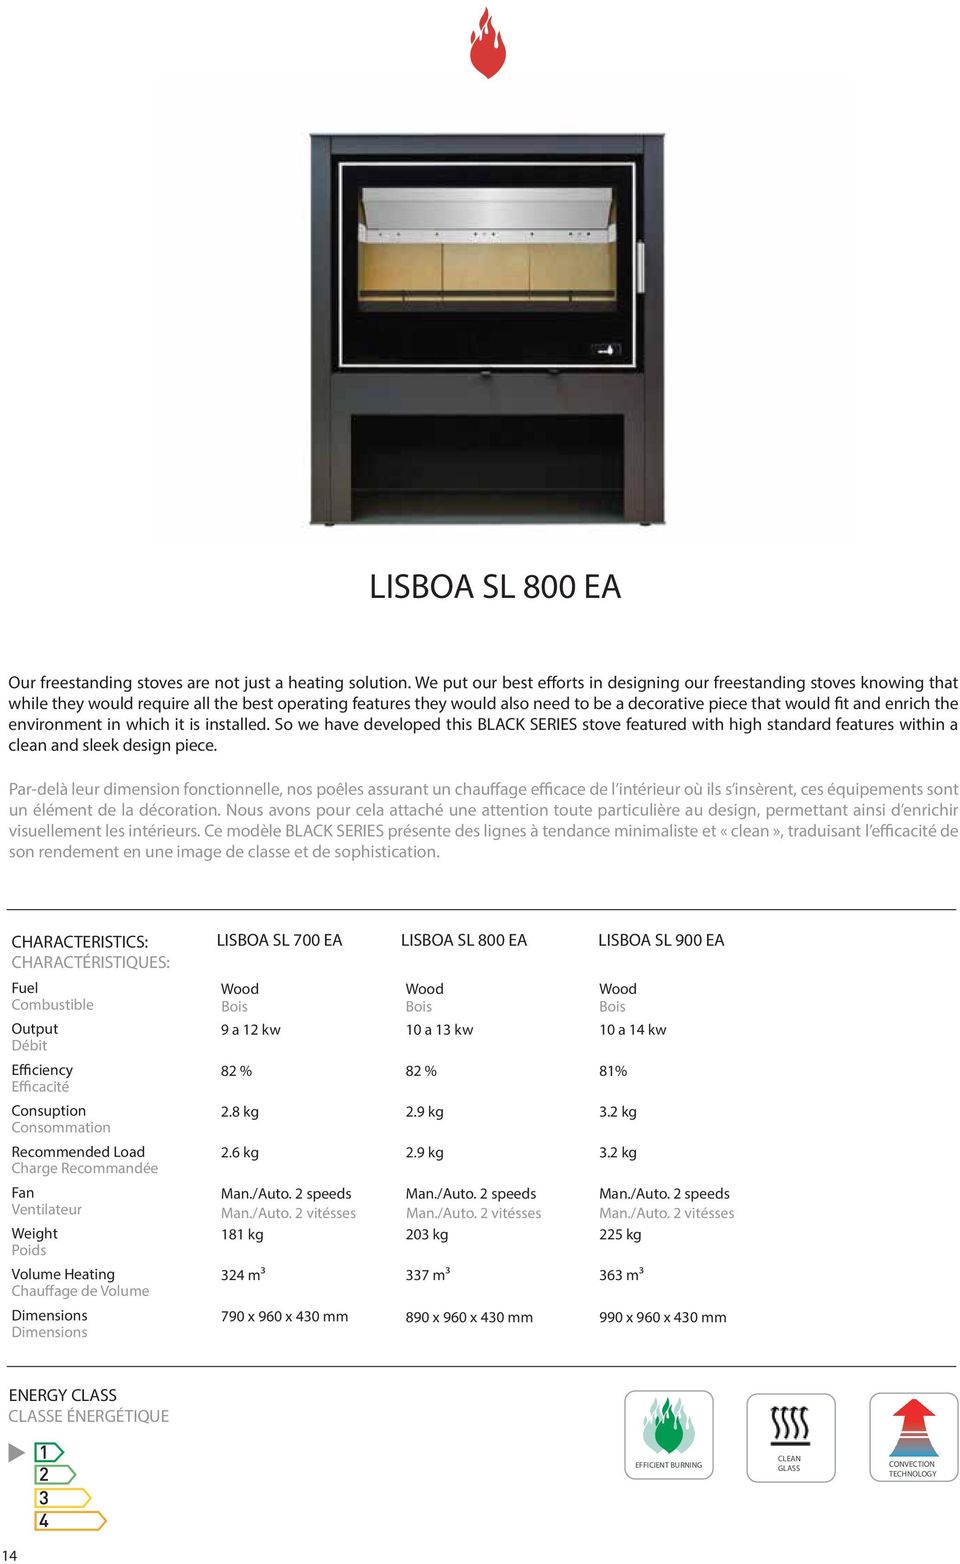 enrich the environment in which it is installed. So we have developed this BLACK SERIES stove featured with high standard features within a clean and sleek design piece.